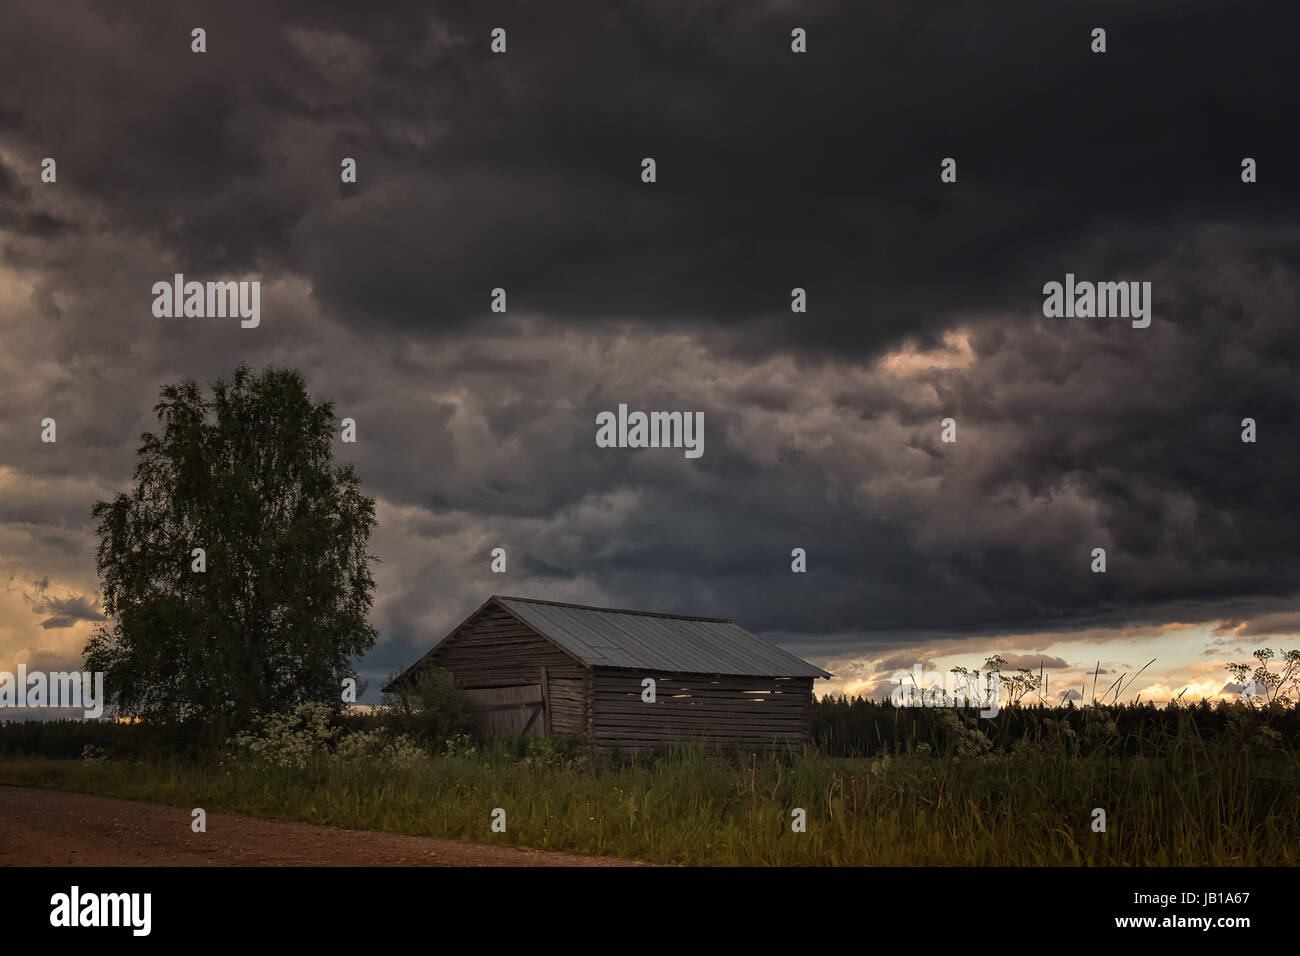 The warm summer day is turning into a thunder storm in the Northern Finland. The weather in these parts can be quite - Stock Image